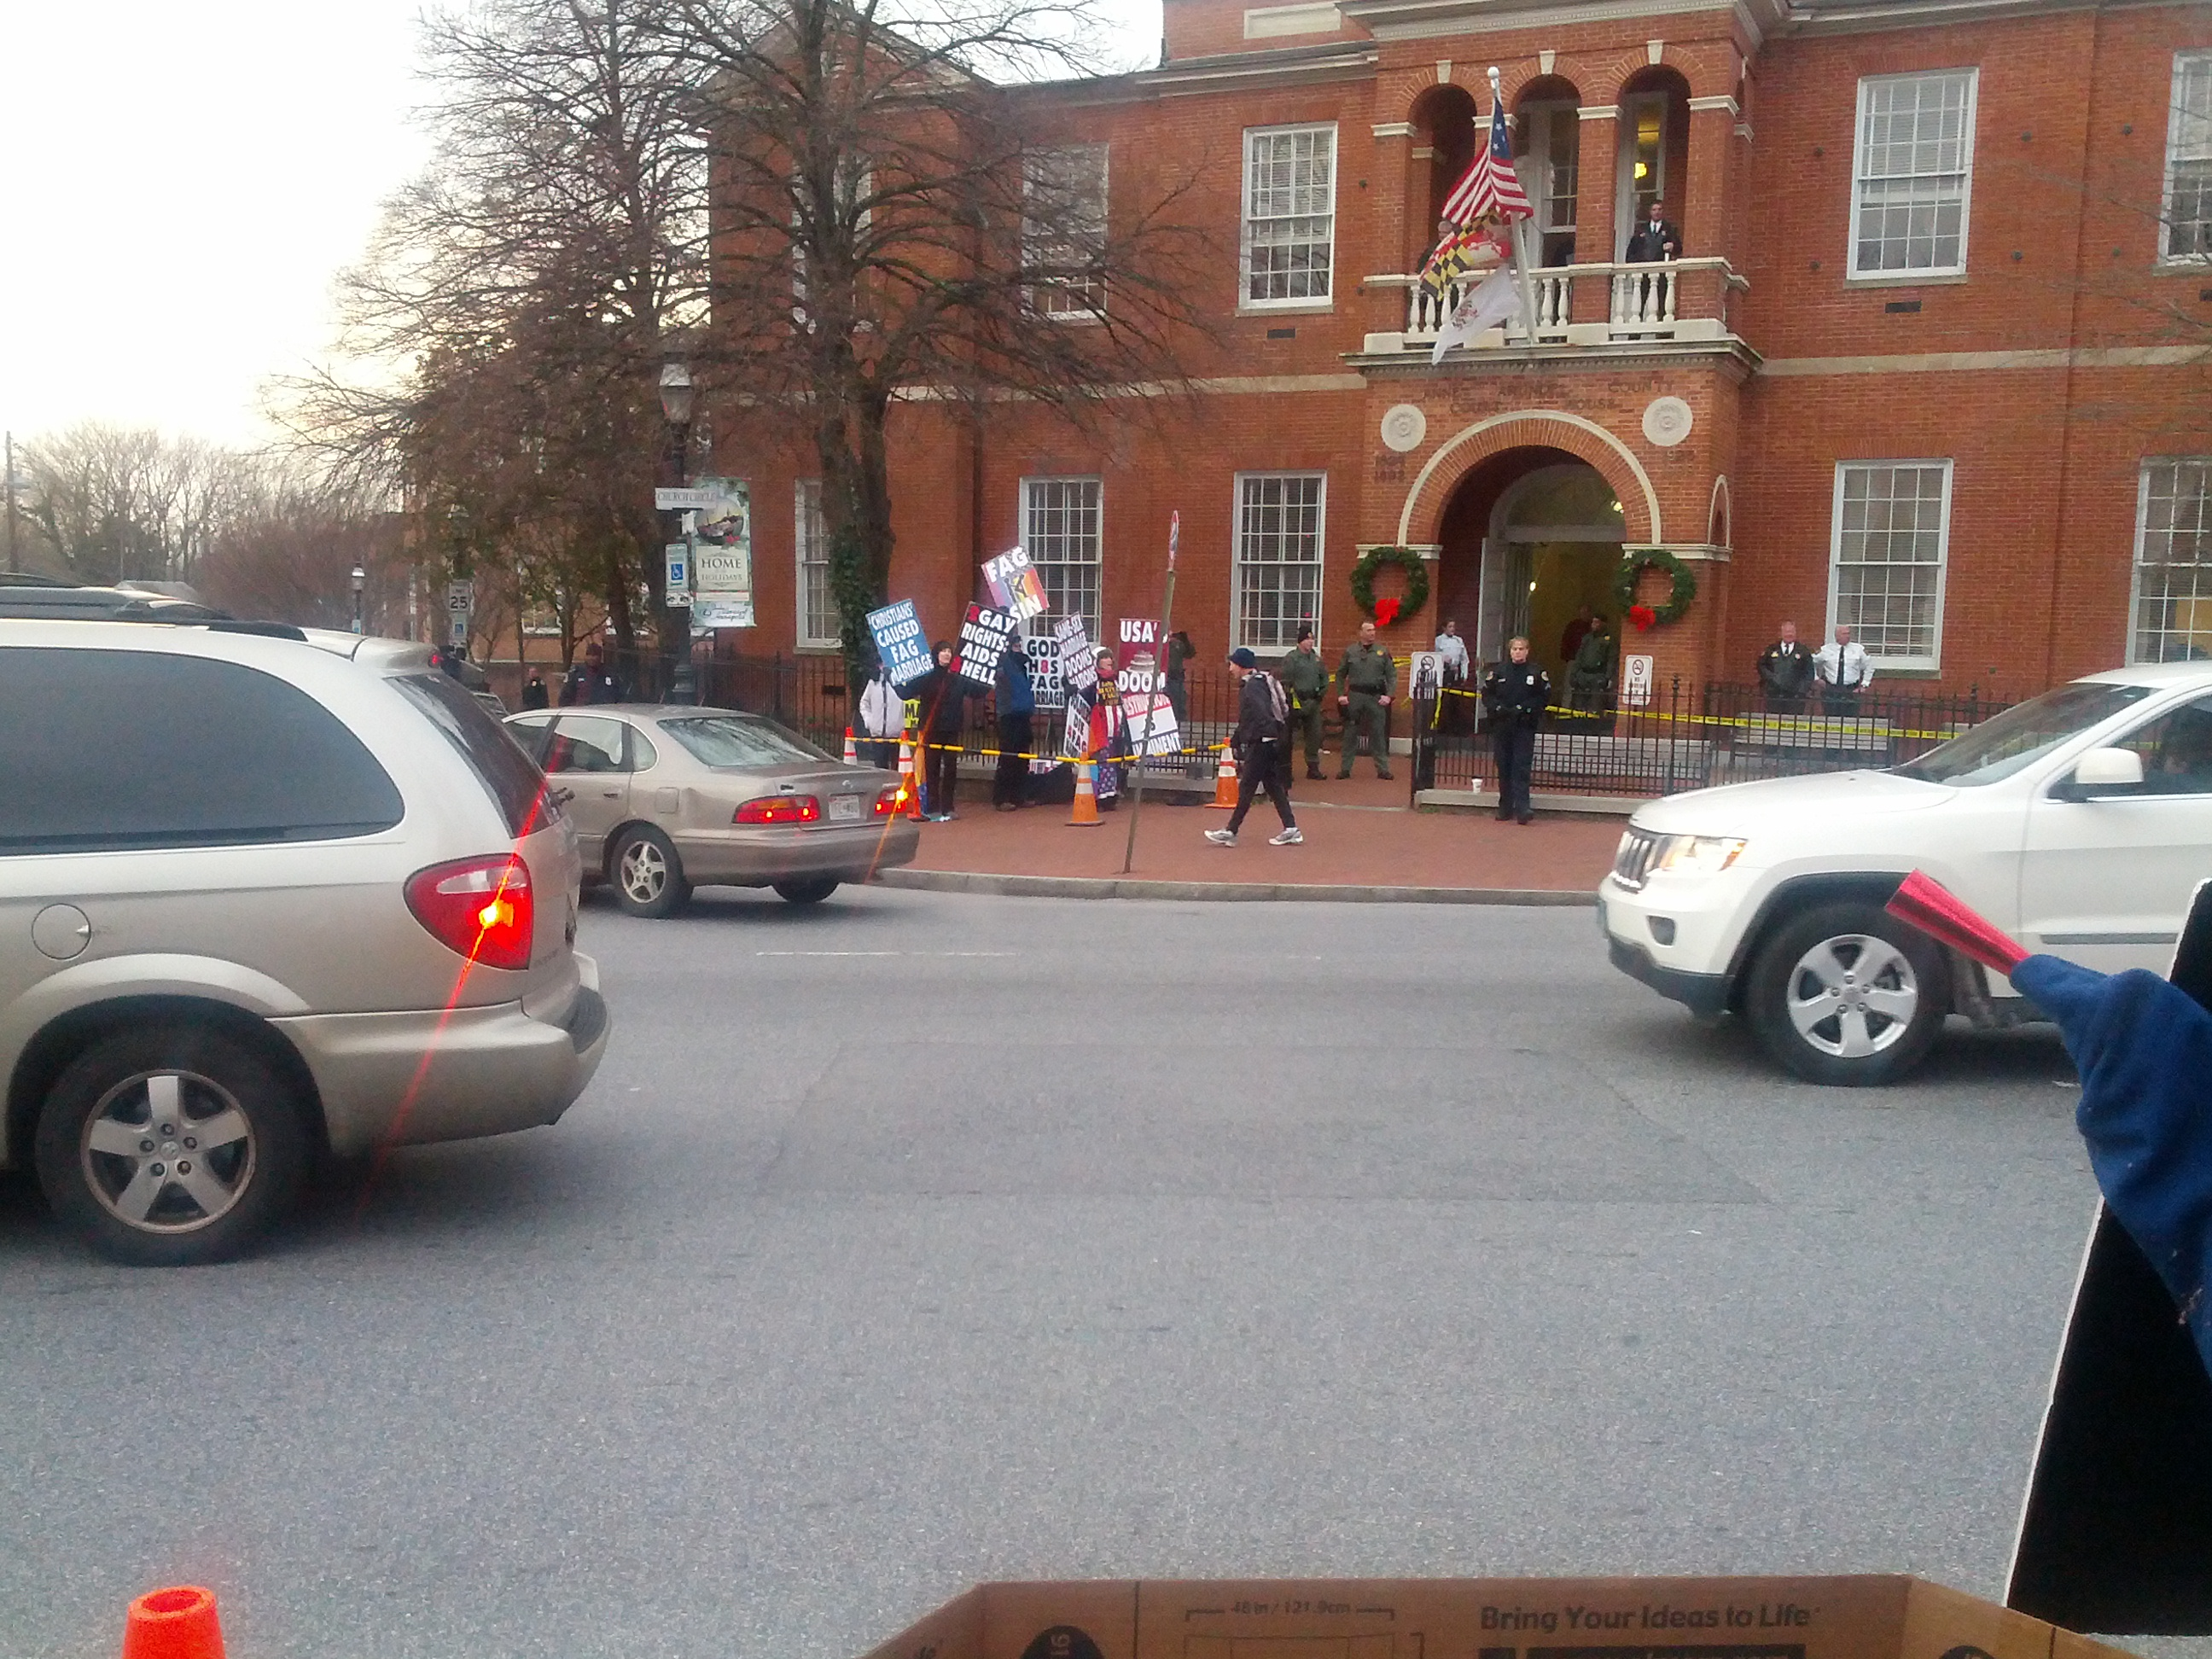 Members of Westboro Baptist Church demonstrating outside Anne Arundel County Courthouse in Annapolis, MD.